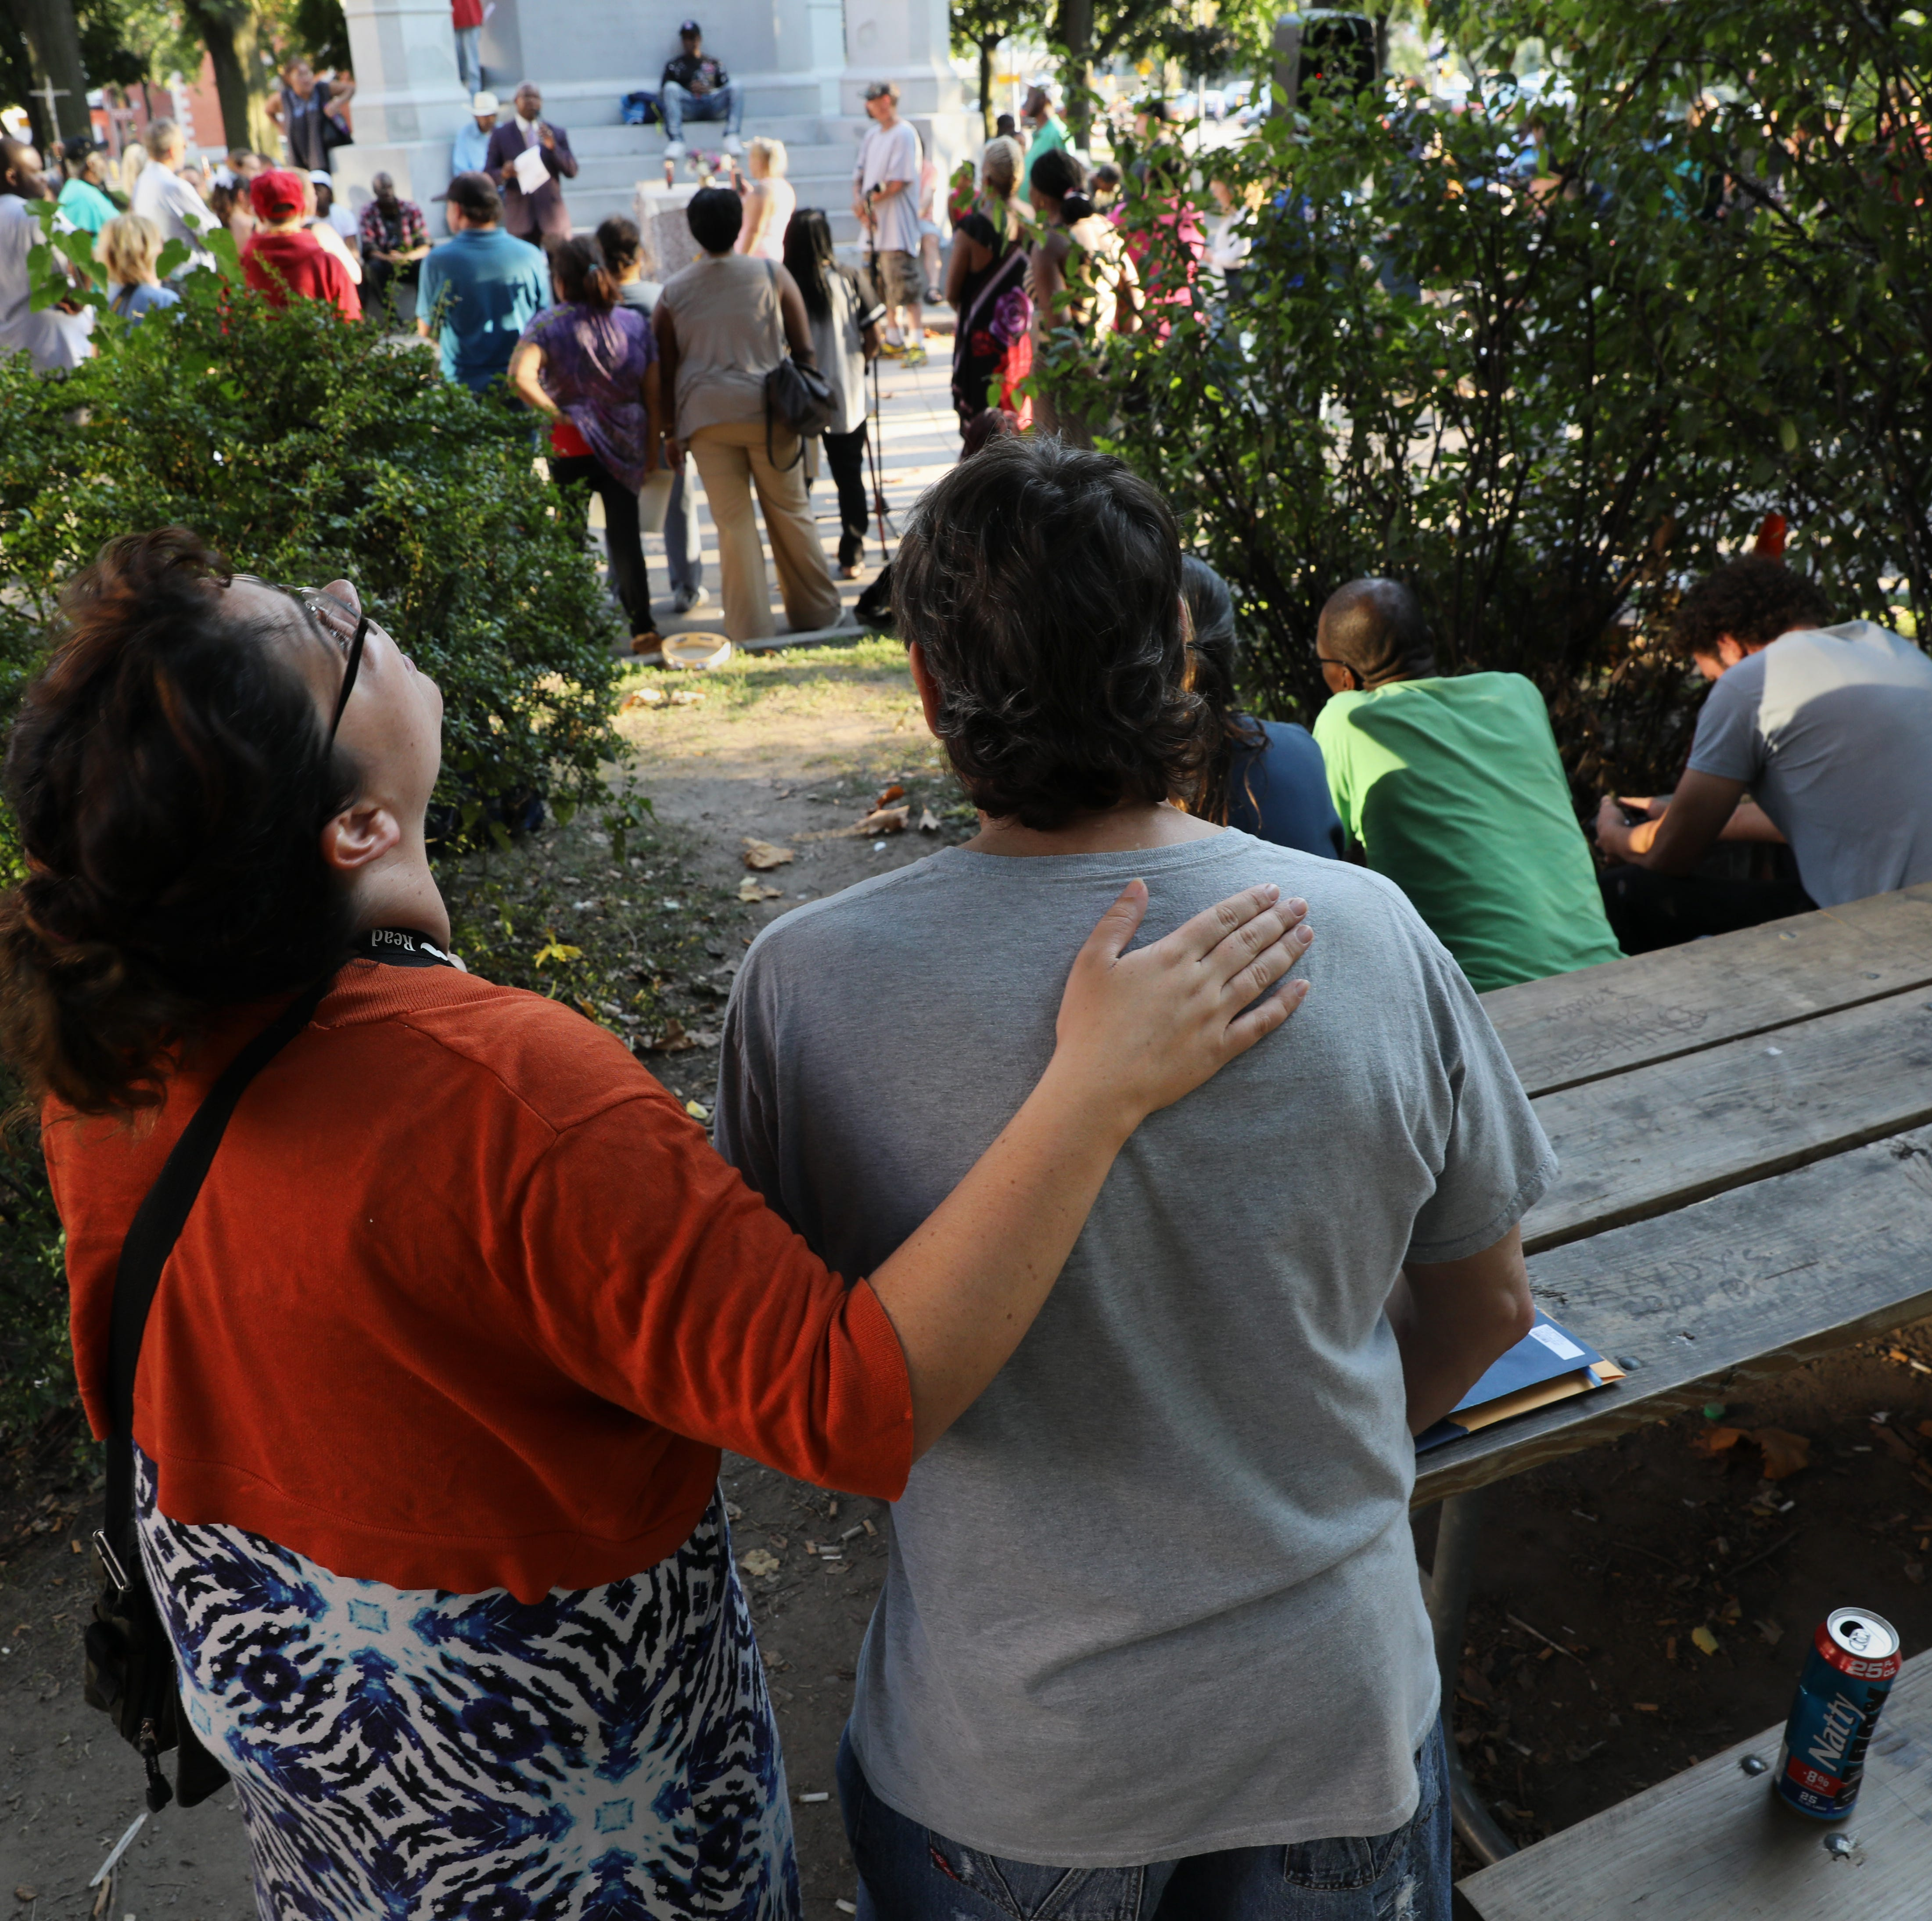 A homeless man dies in a park, and more than 120 turn out to mourn him